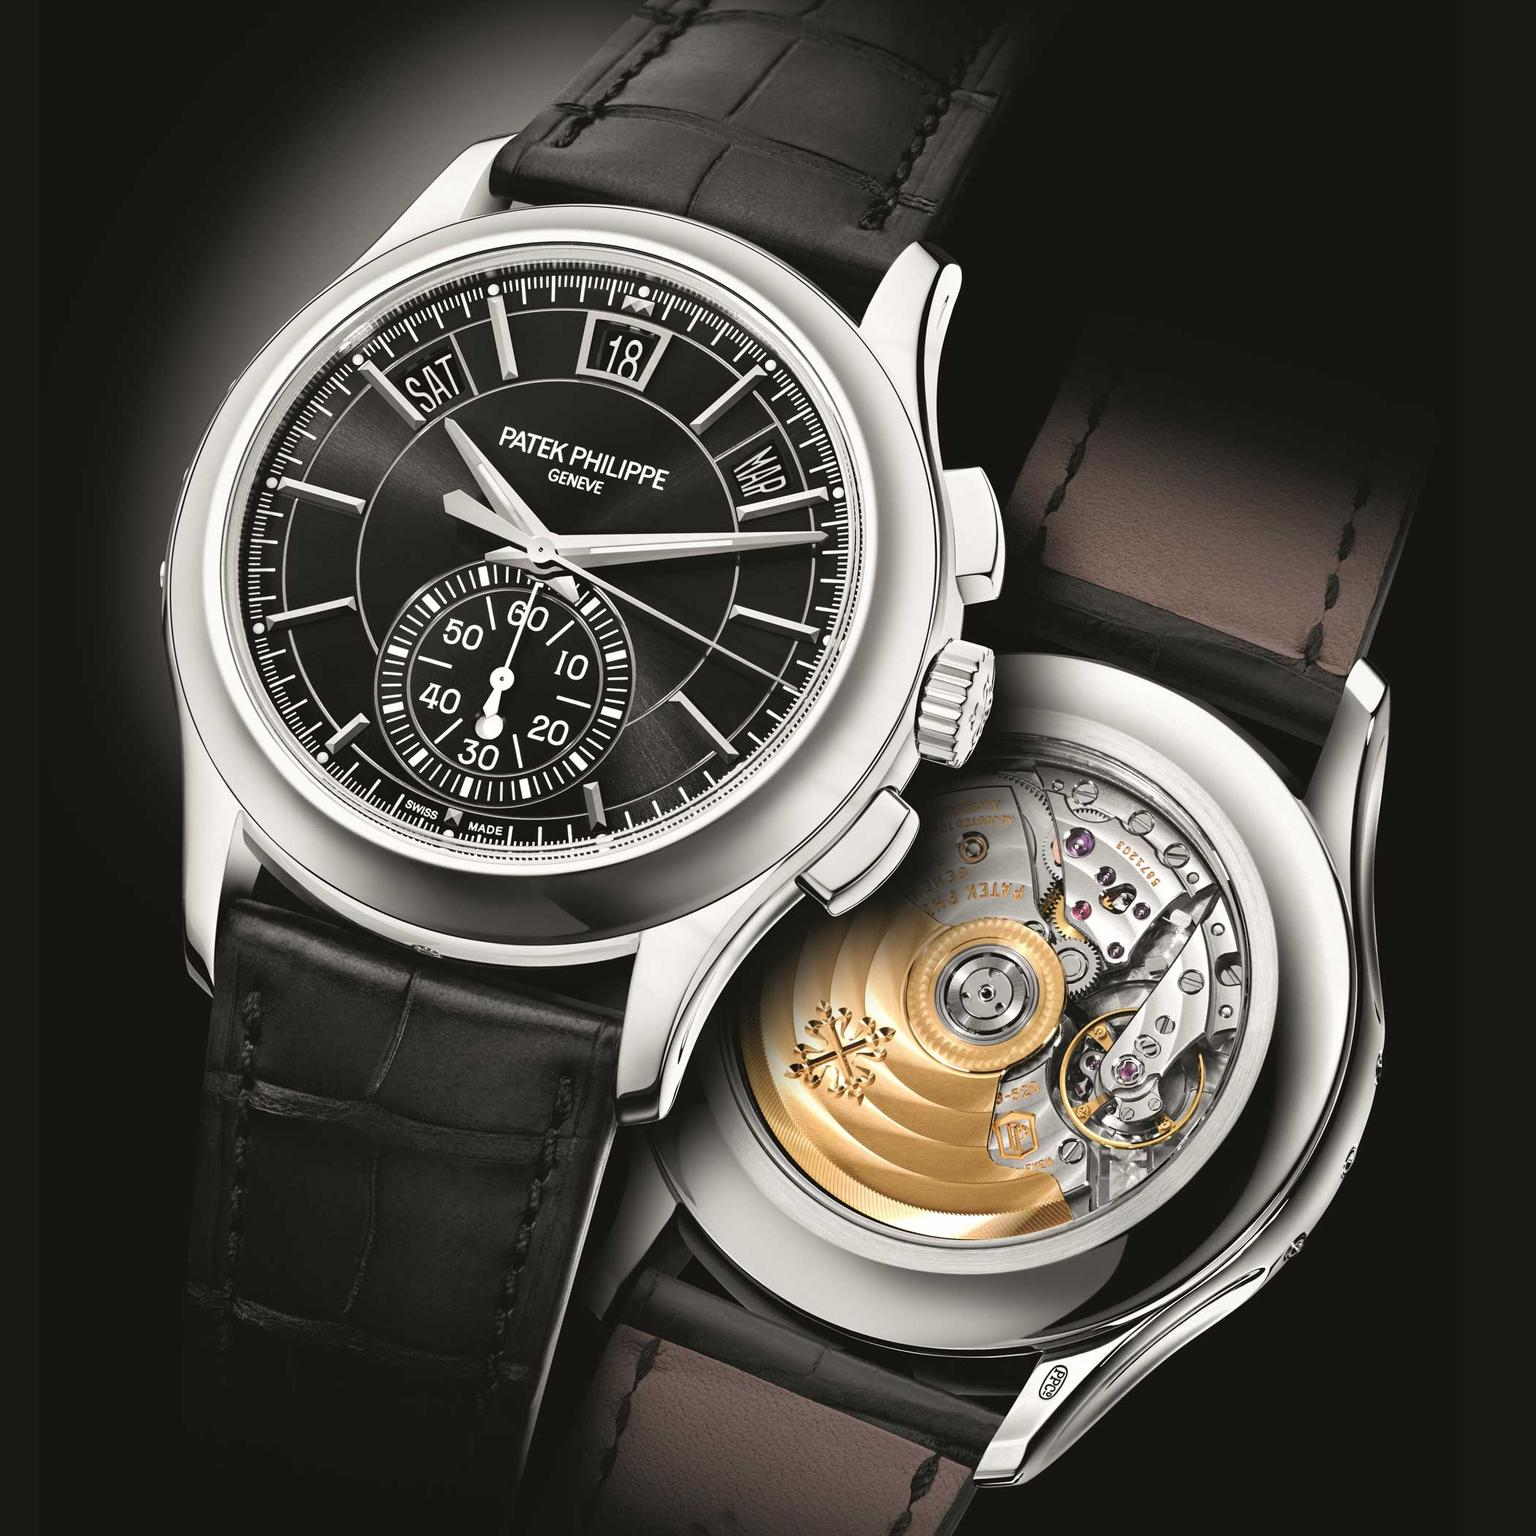 Patek Philippe Annual Calendar Chronograph 5905P black dial front and back